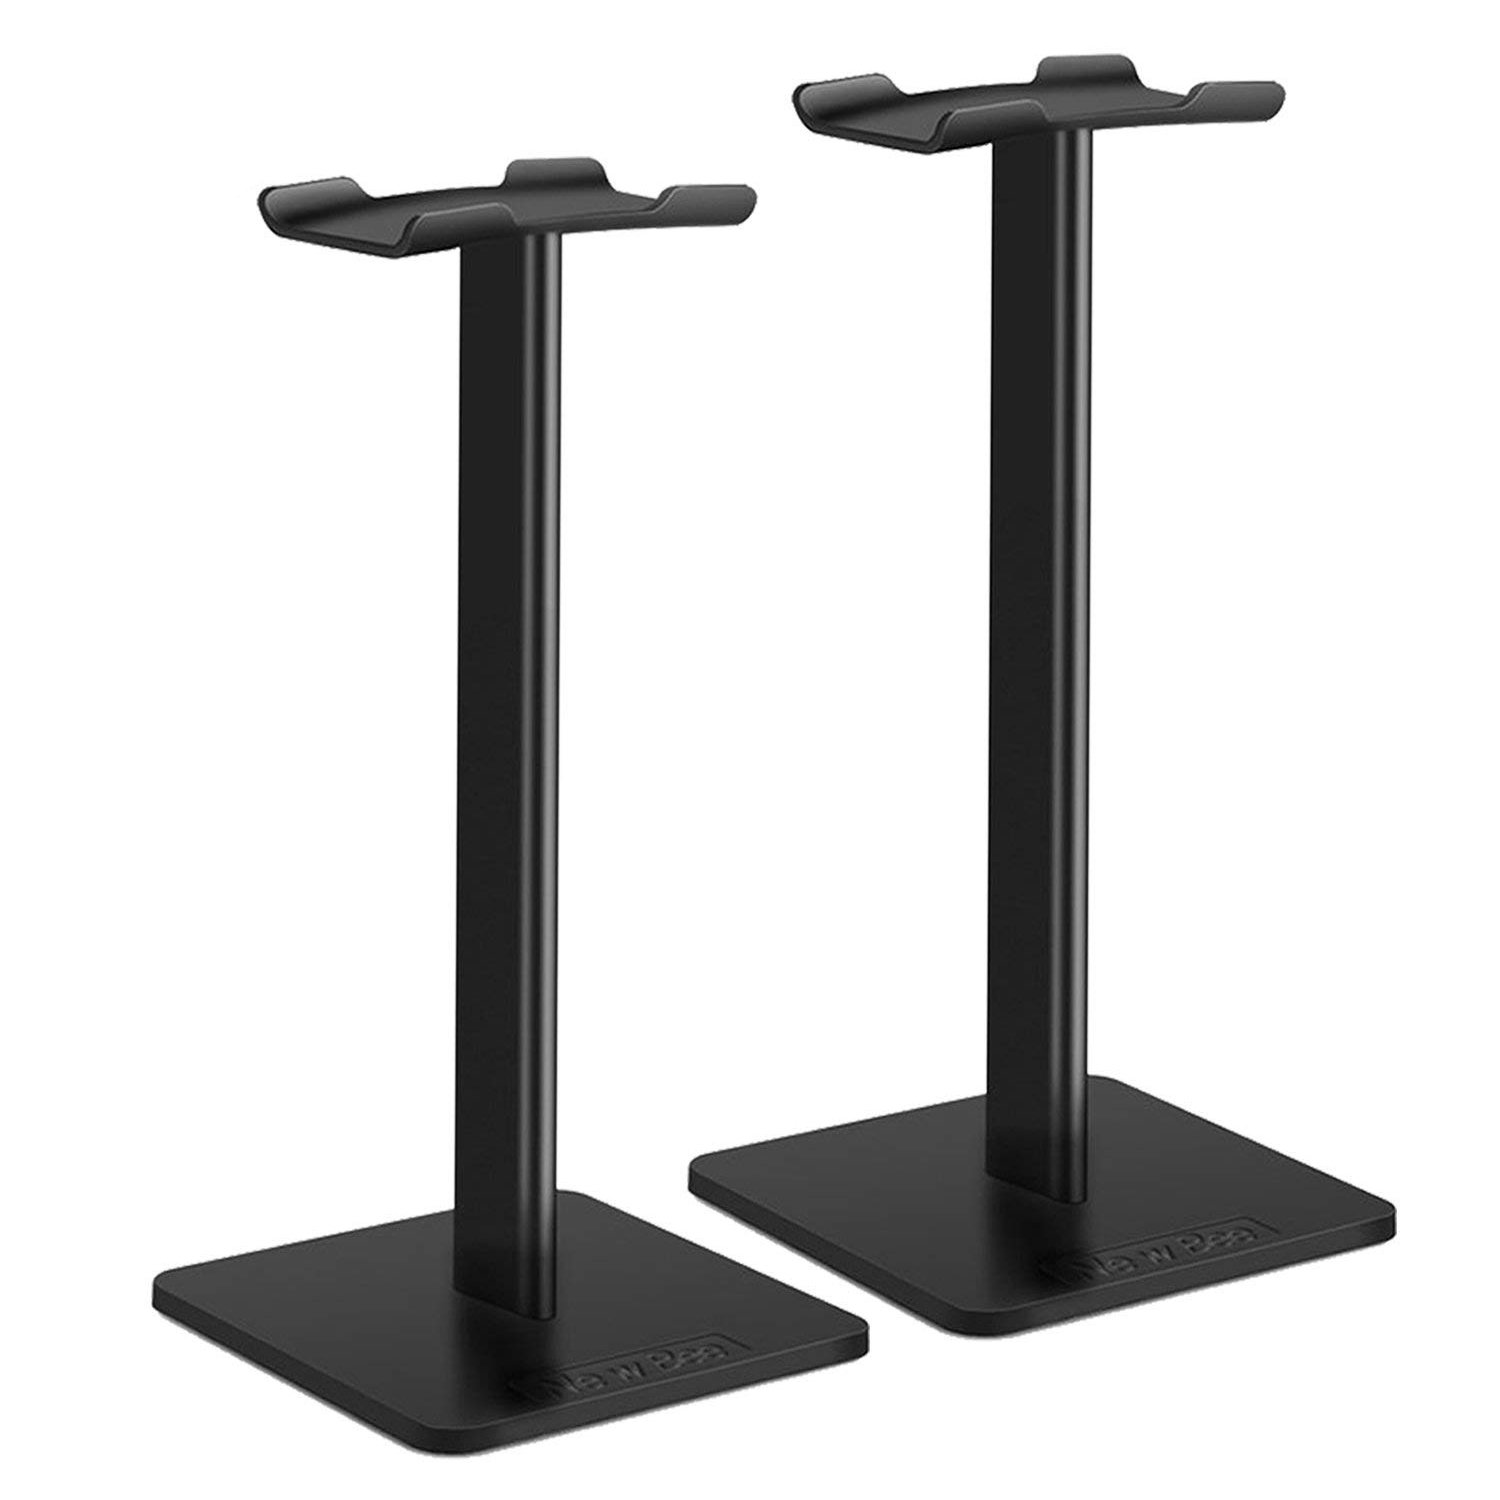 Headphone Stand Headset Holder New Bee Earphone Stand with Aluminum Supporting Bar Flexible Headrest ABS Solid Base for All Headphones Size (Black) CA-E6GH-BLACK